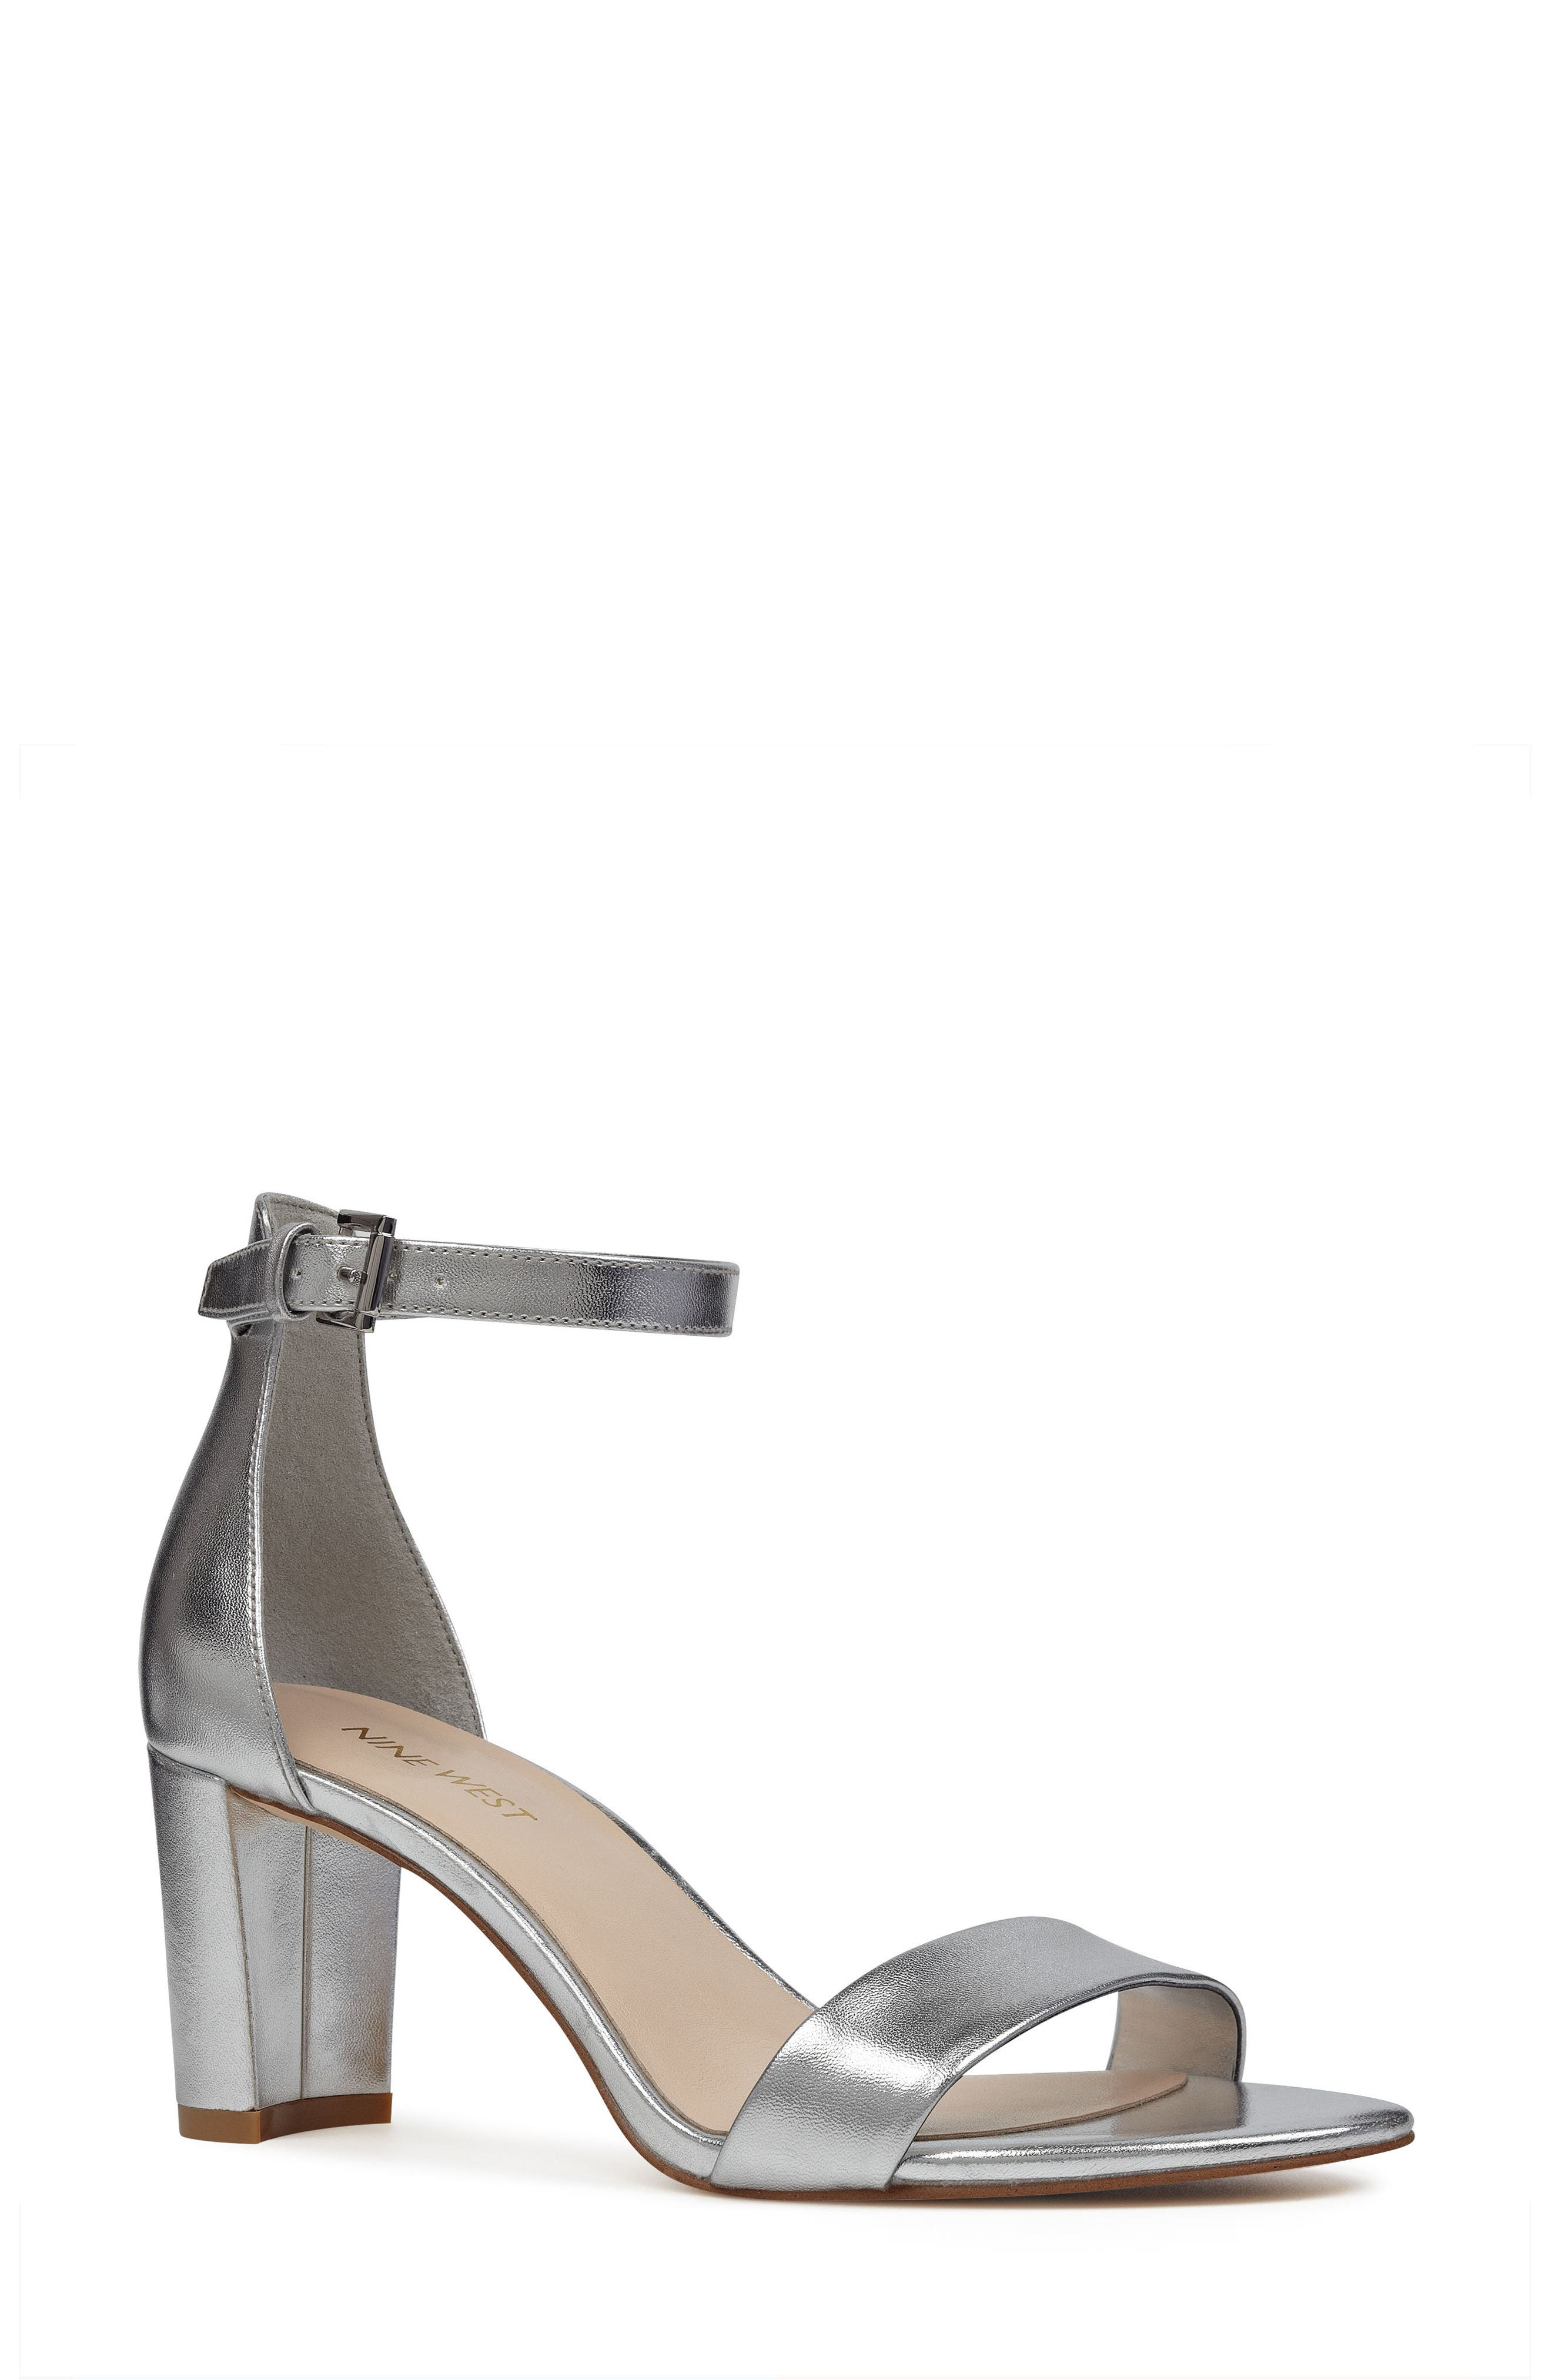 Pruce Ankle Strap Sandal,                             Main thumbnail 1, color,                             Silver Fabric